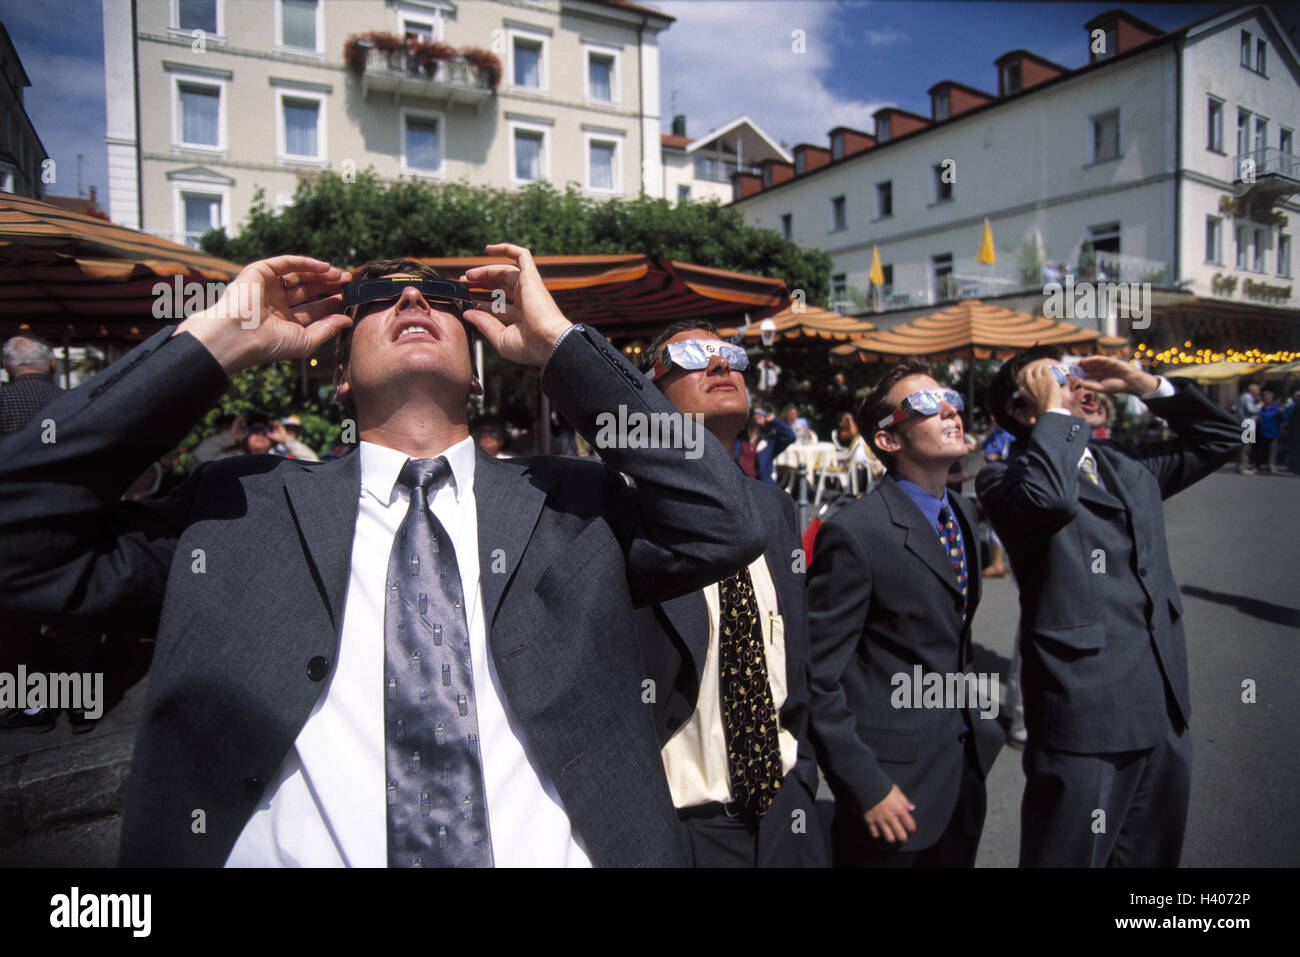 Solar darkness (11th August, 1999), men with solar darkness glasses - Stock Image